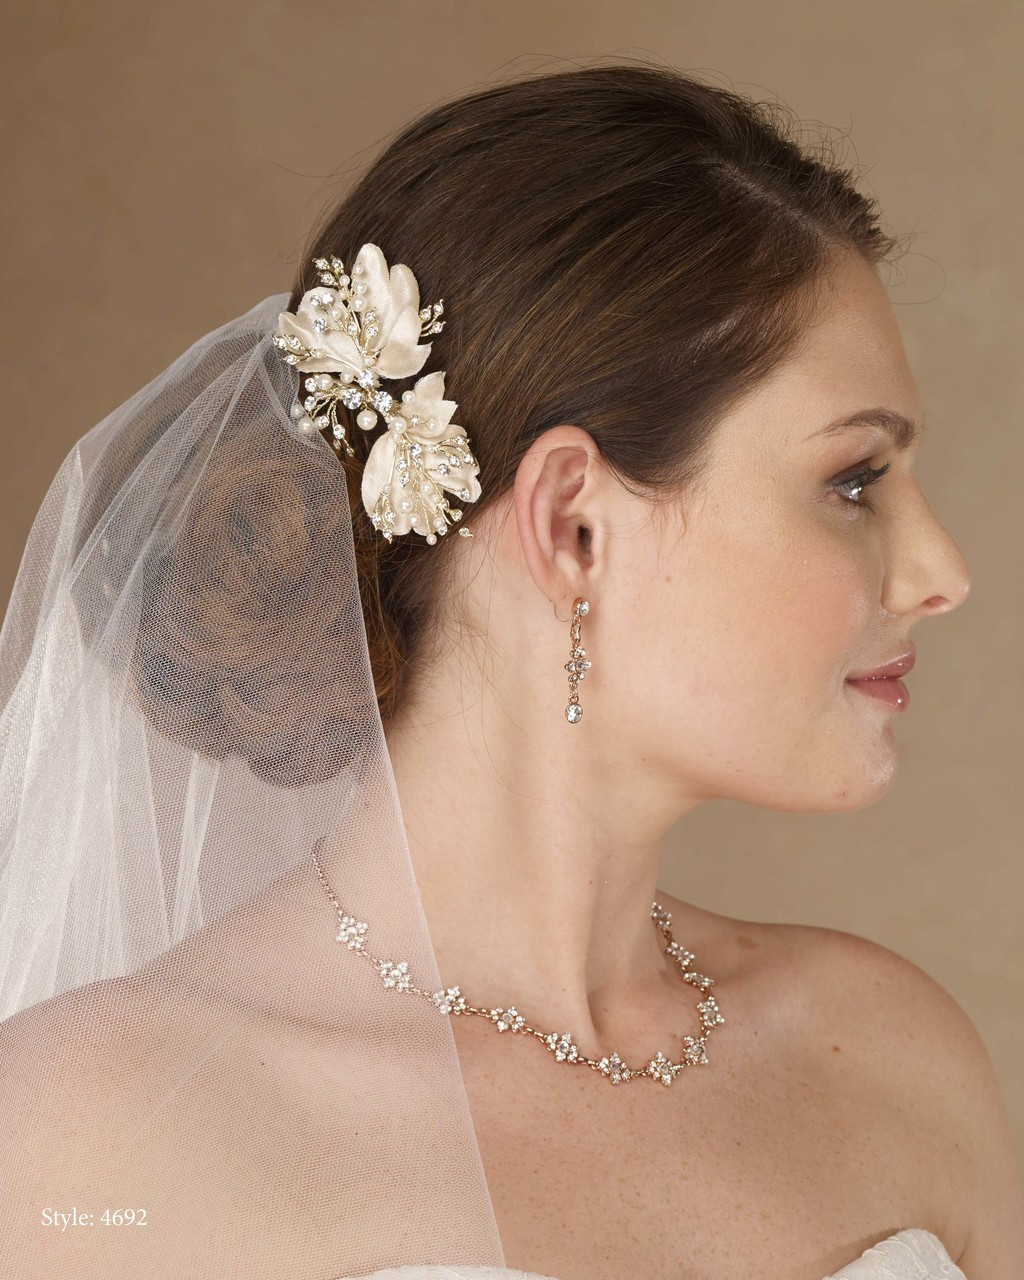 Marionat Bridal 4692 Gold clip with fabric leaves, pearls and rhinestone - Le Crystal Collection